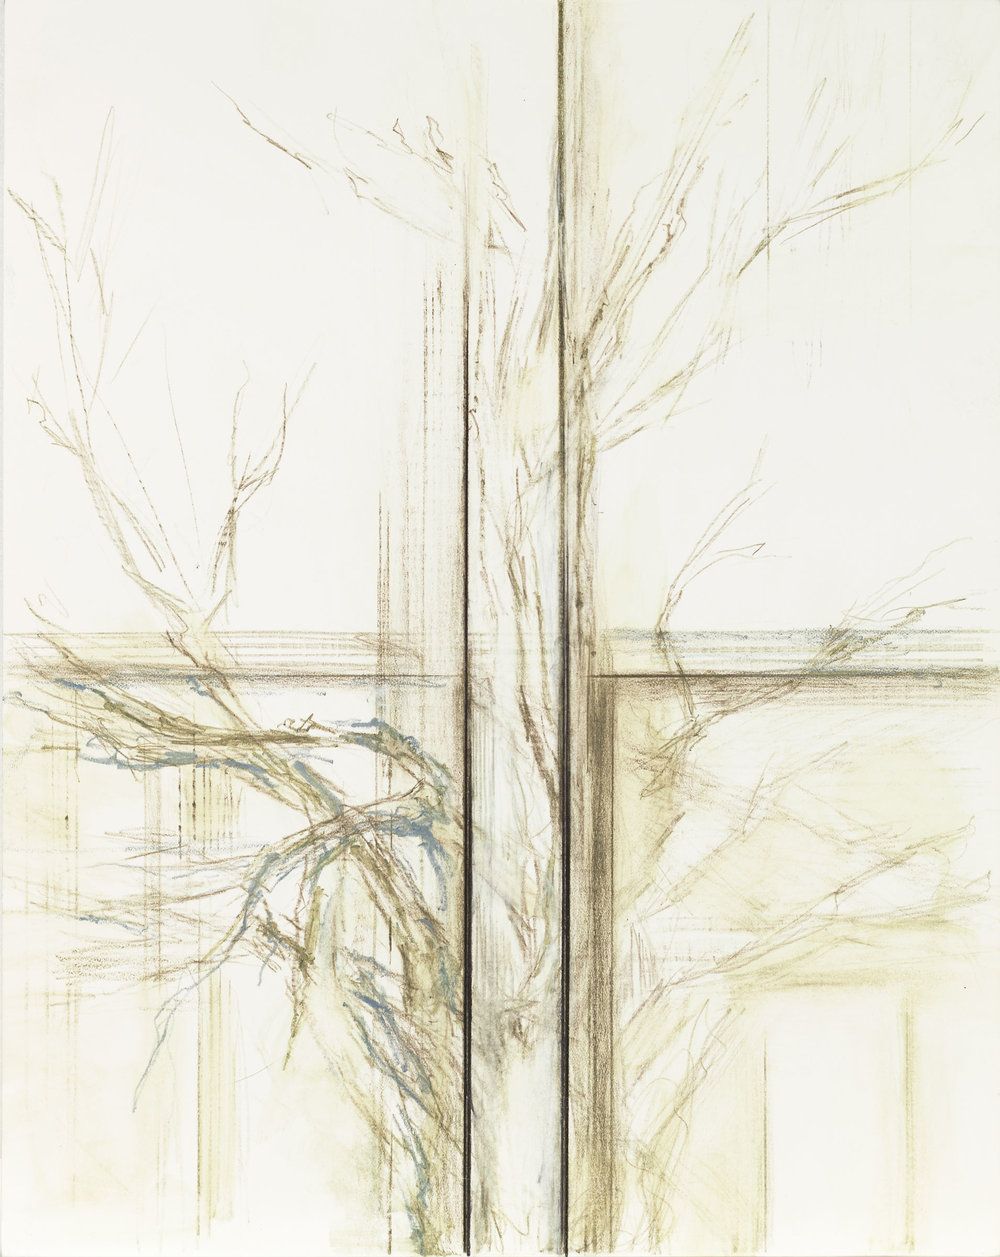 Hedda Sterne, Untitled, 1994, Graphite, colored pencil on paper, 14 1/2 in. x 11 1/2 in. (36.83 cm x 29.21 cm)